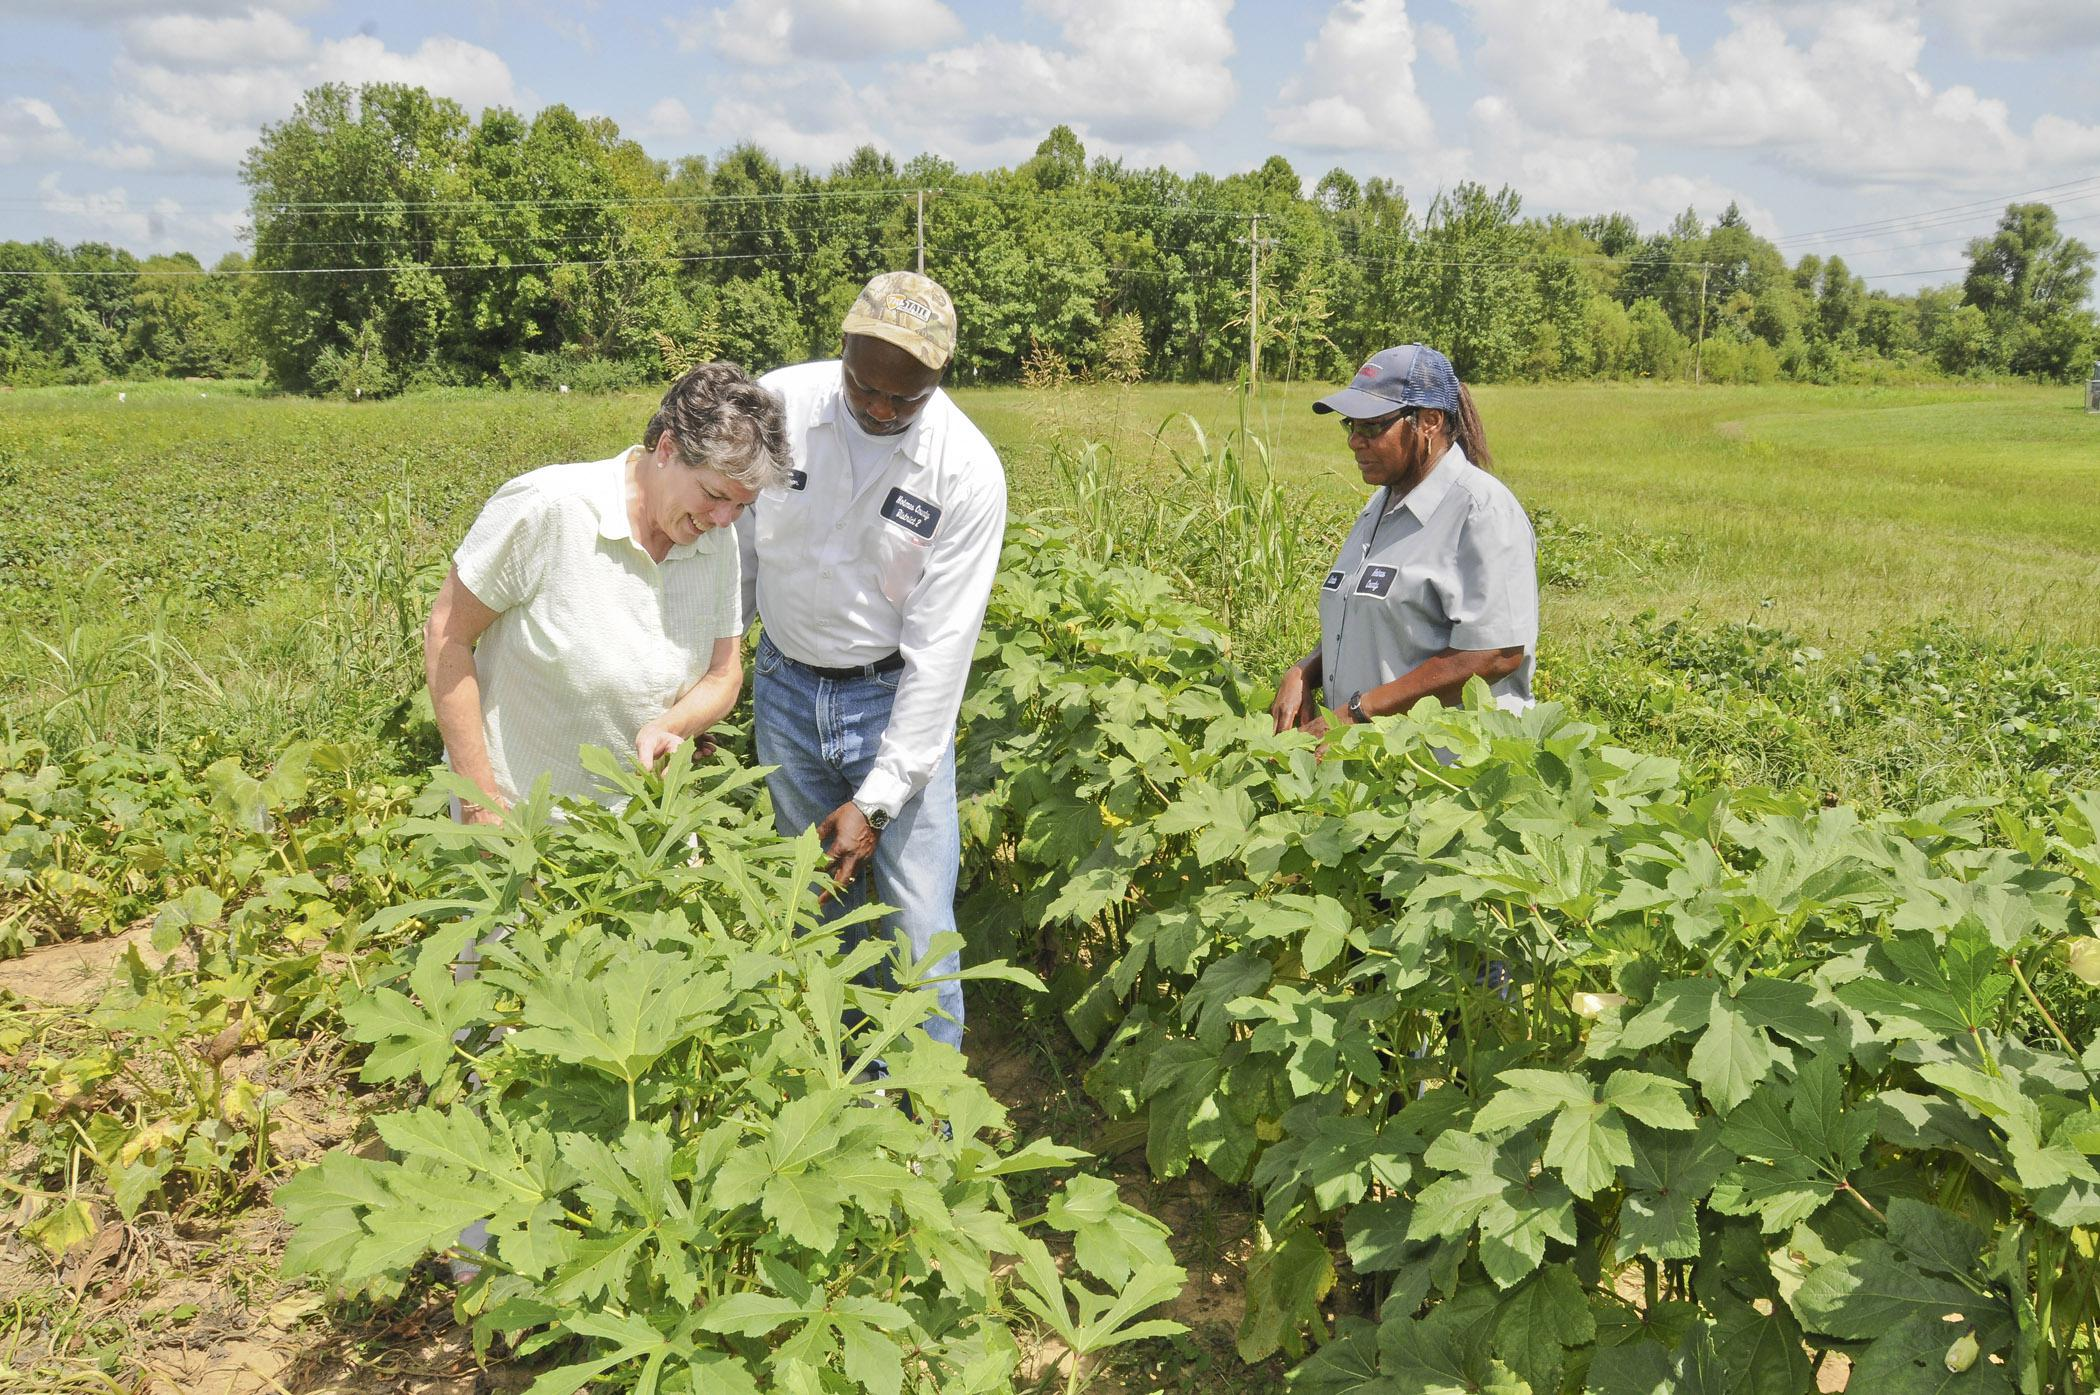 From left, Holmes County Extension Director Betsy Padgett, Holmes County District 2 Supervisor James Young, and Holmes County Supervisor District 2 staff member Linda Lowery inspect okra in the community garden in Durant. (Photo by MSU Ag Communications/Scott Corey)